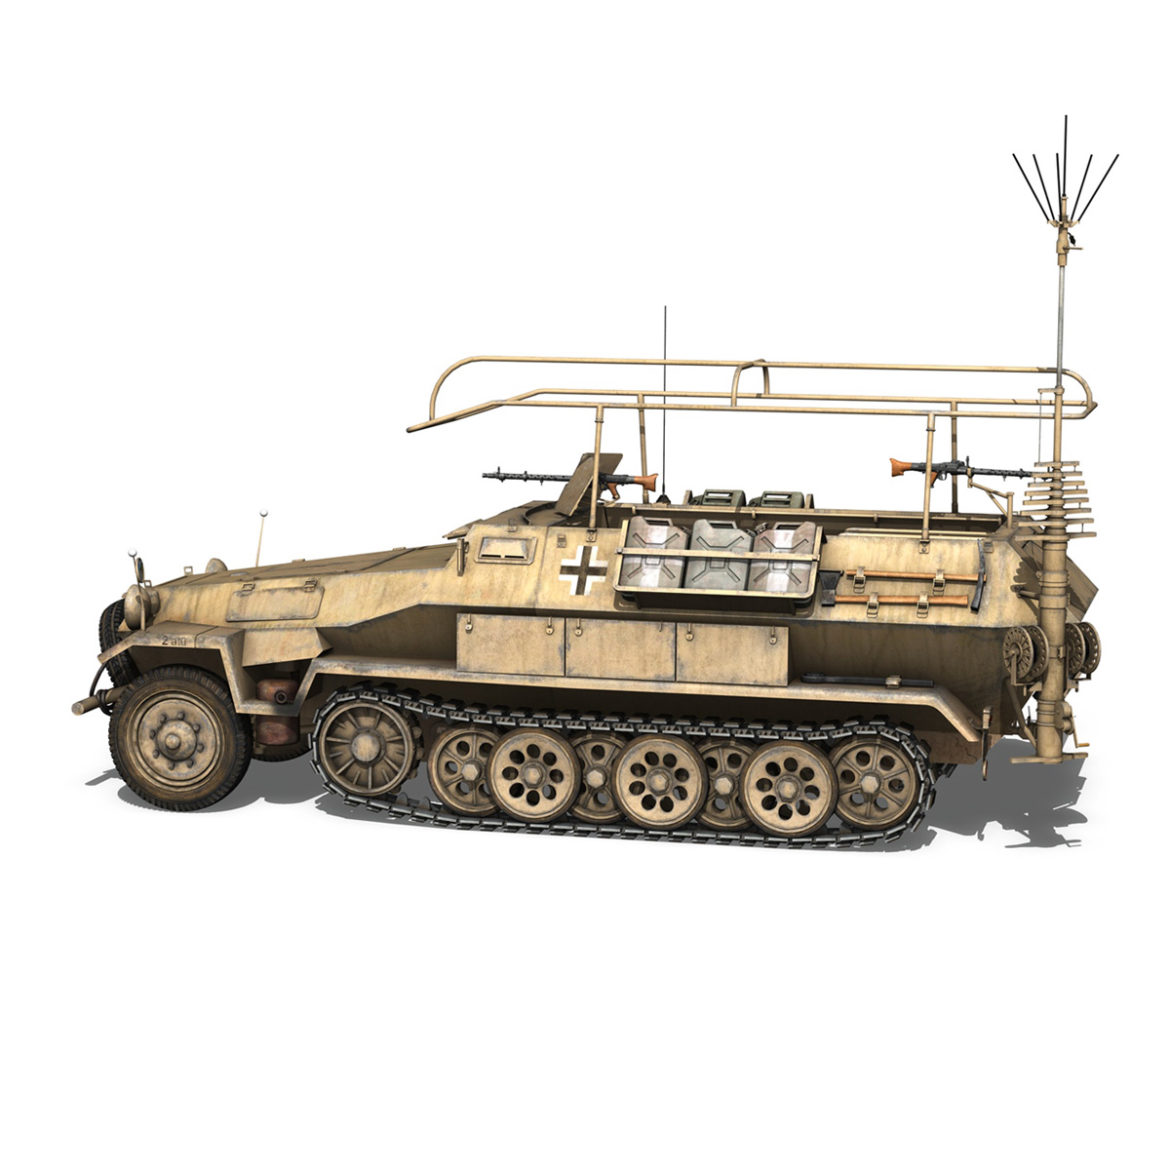 sdkfz 251 ausf.b – communications vehicle – 15pd 3d model 3ds fbx lwo lw lws obj c4d 305988